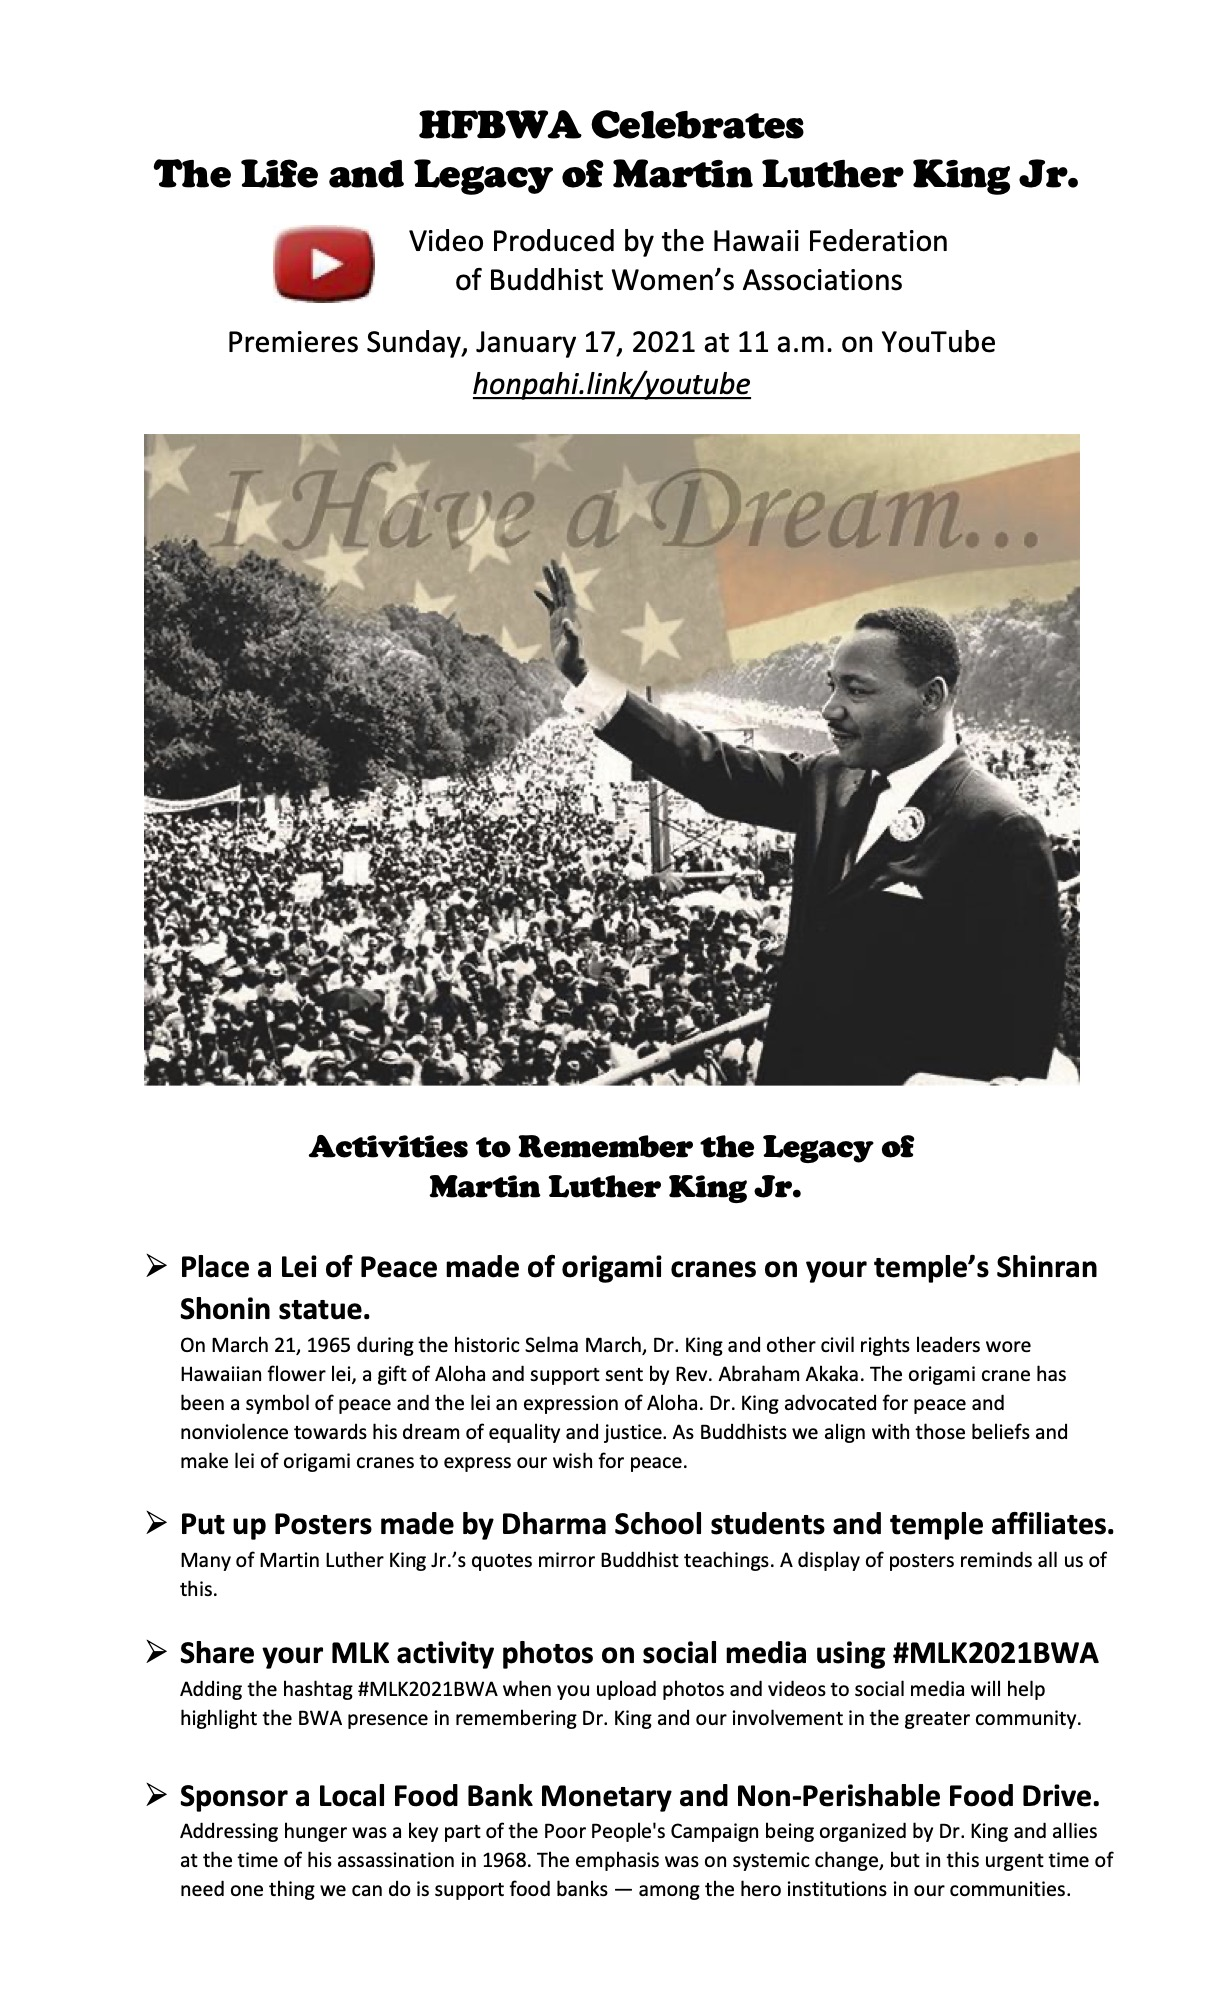 Martin Luther King, Jr. Video/HFBWA on YouTube